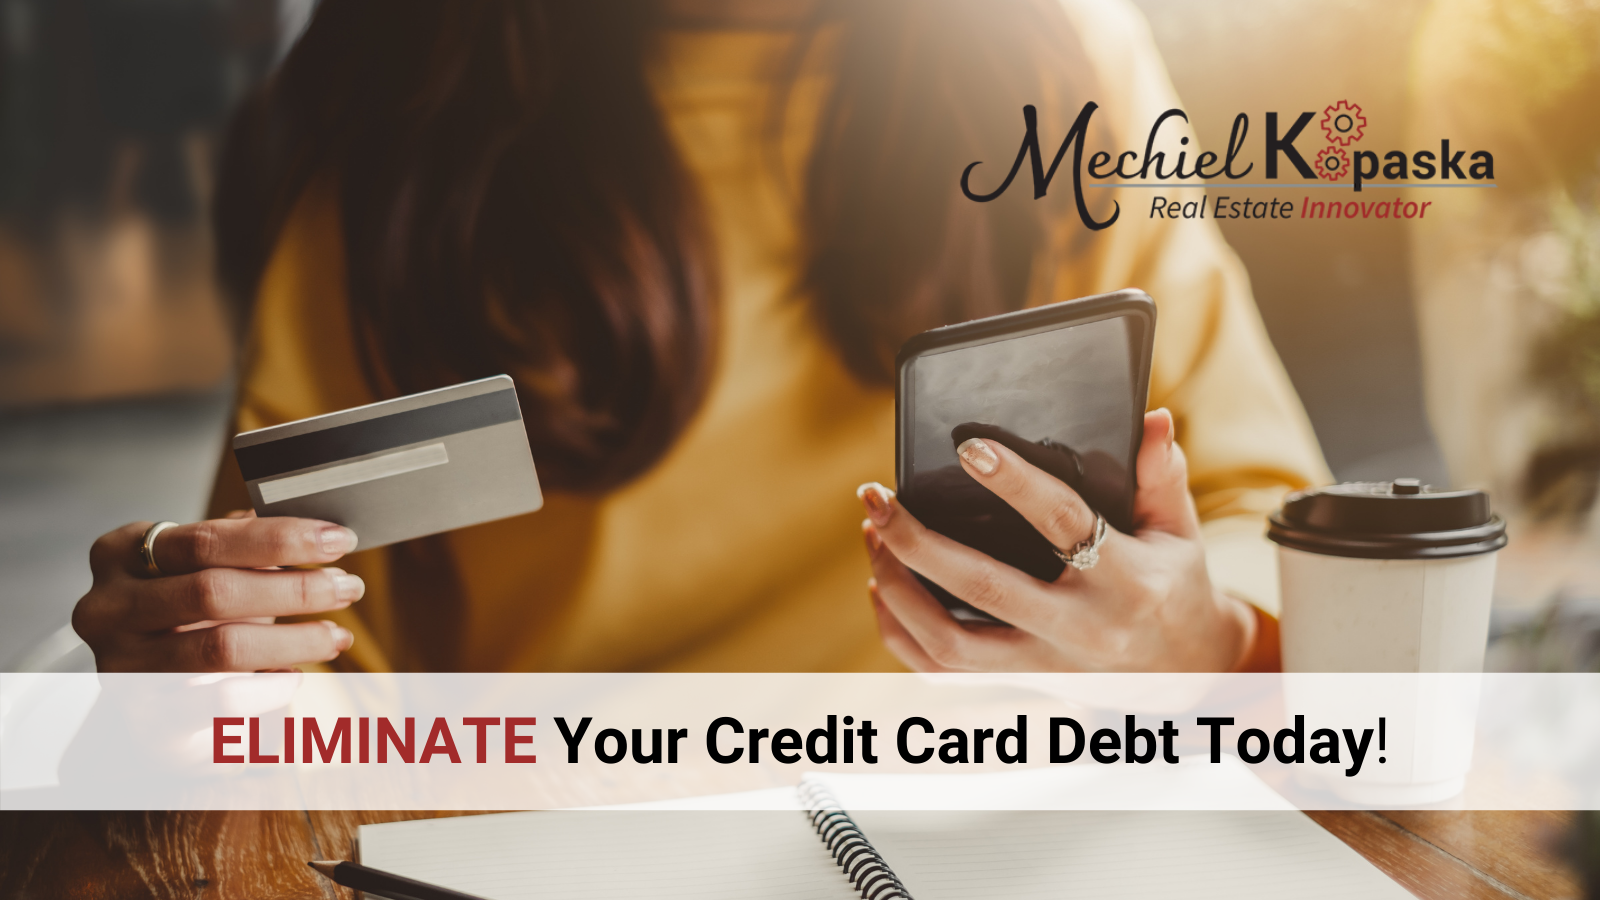 Eliminate Your Credit Card Debt Today!